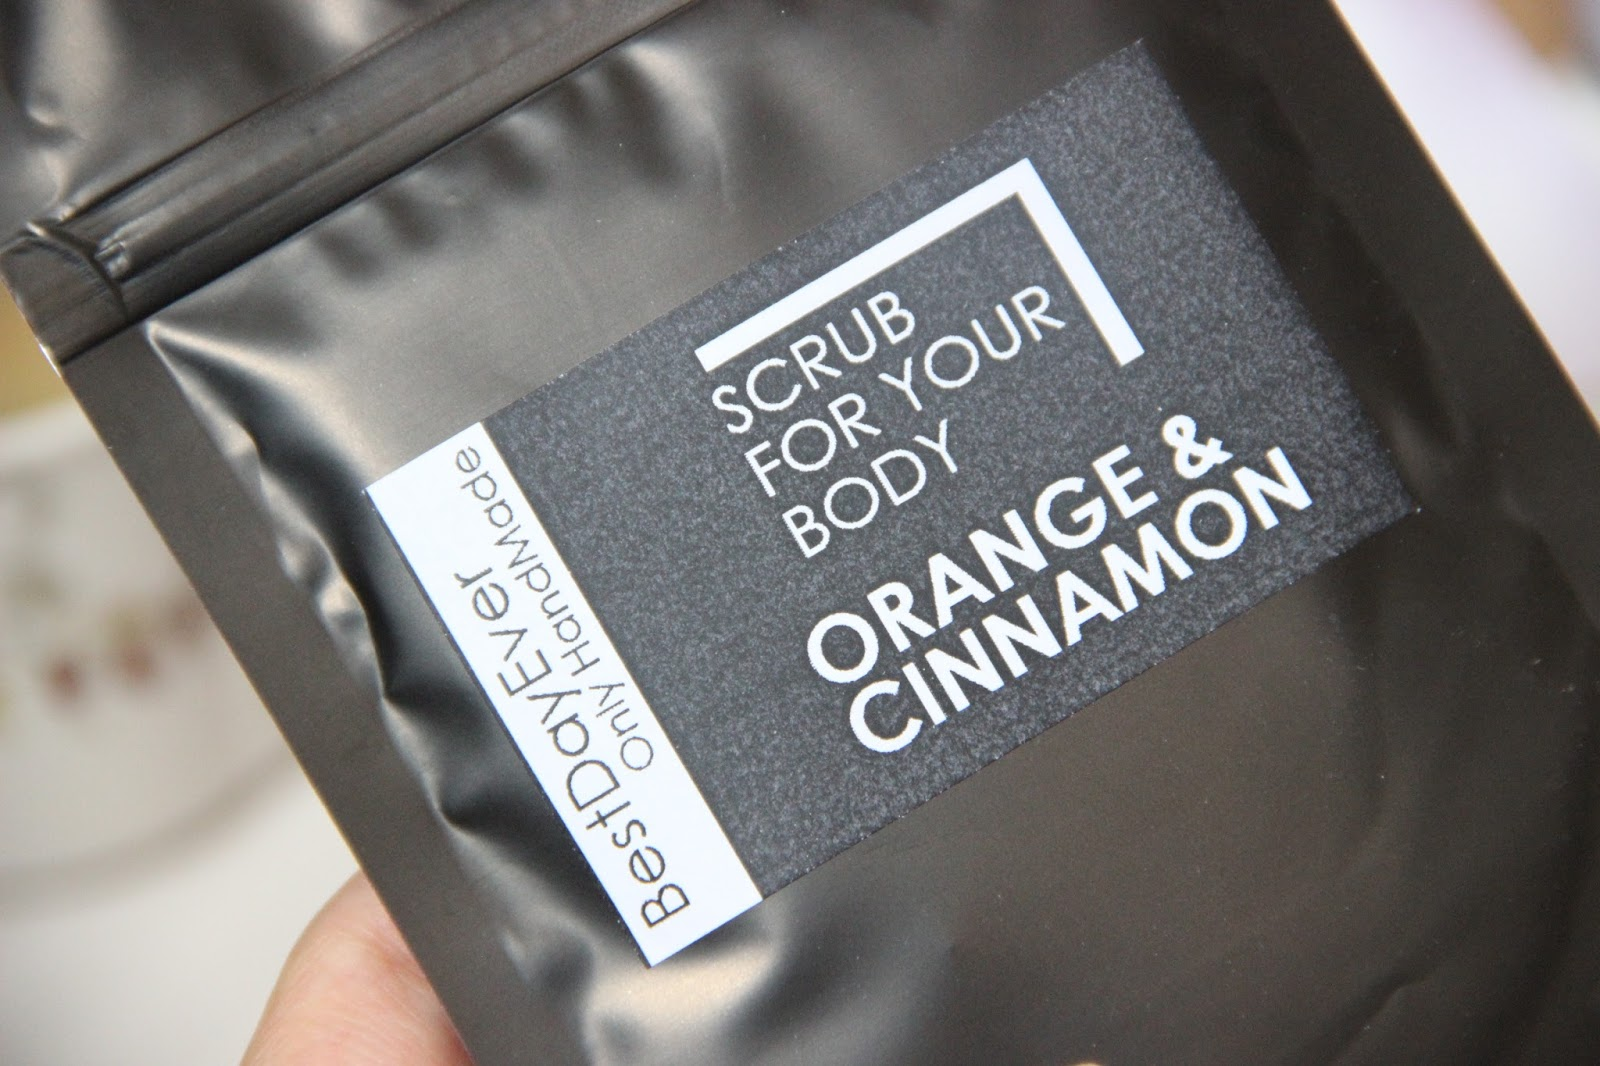 "Best Day Ever - скраб для тела Scrub for your body Orange and Cinnamon ""Апельсин и корица""."